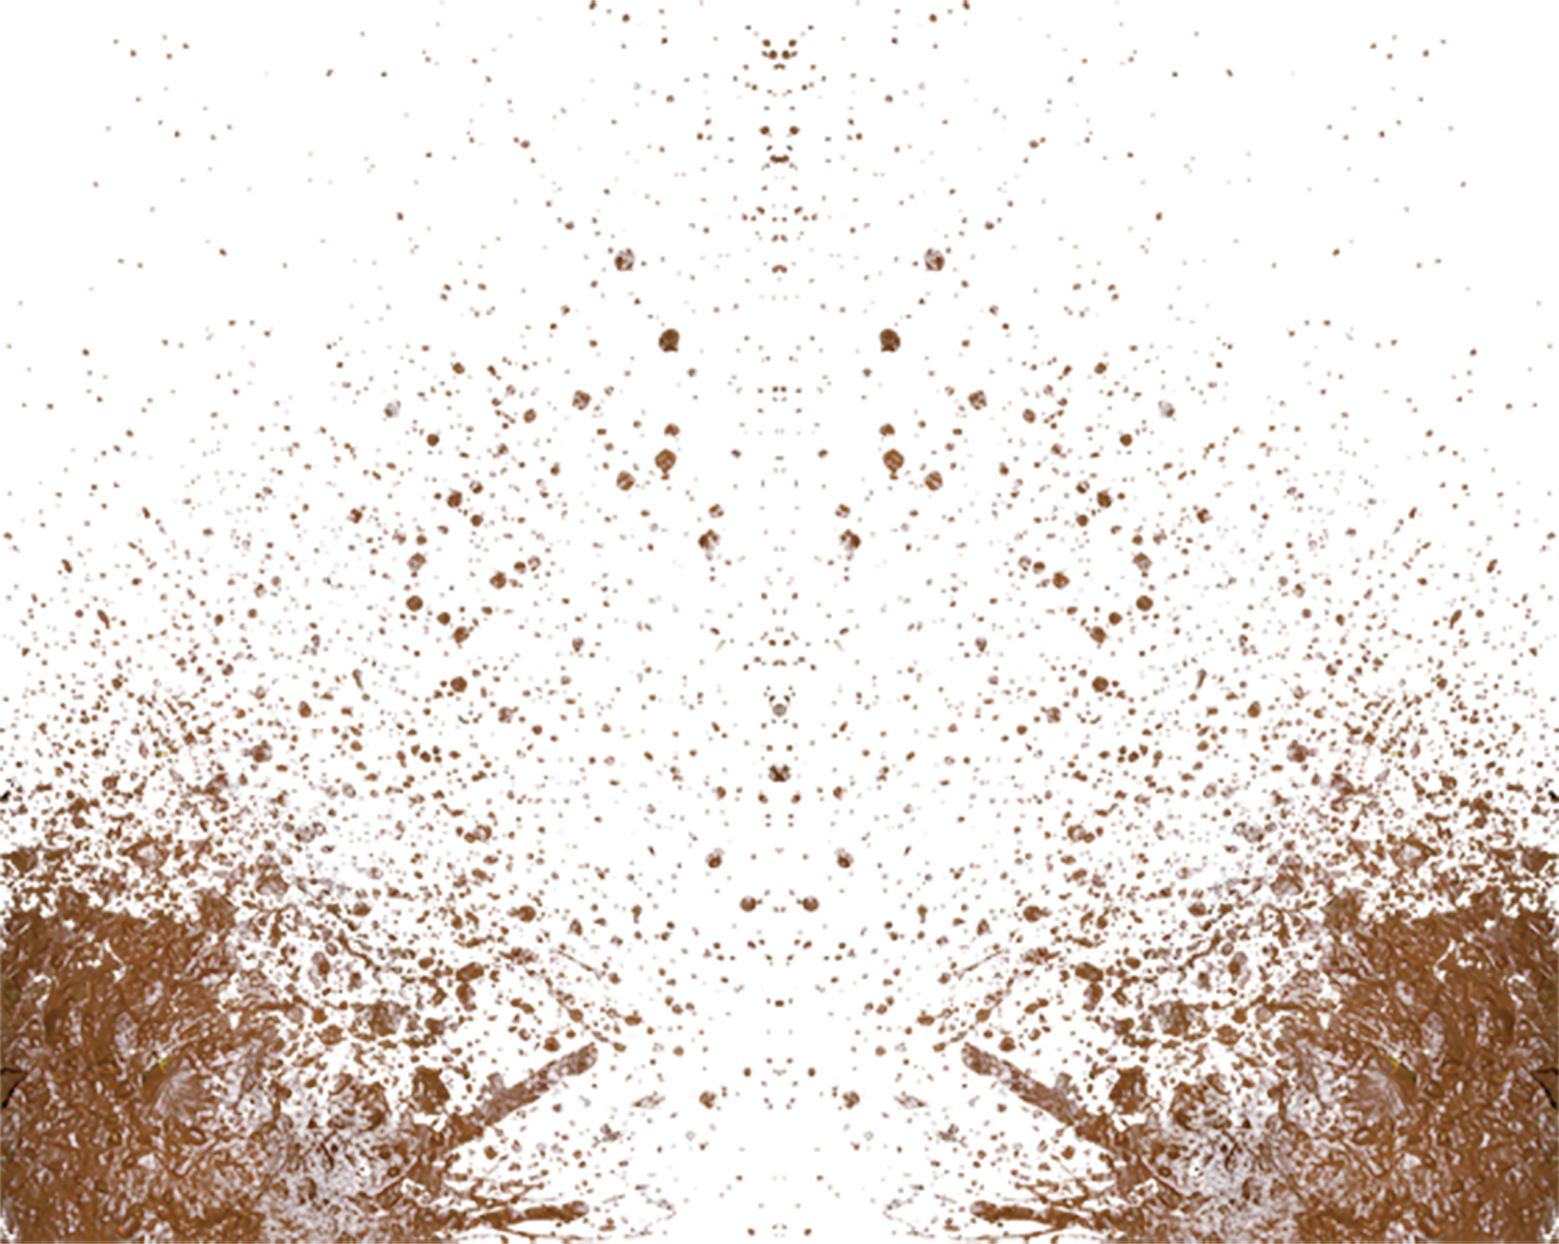 Dirt texture png. The song of beautiful